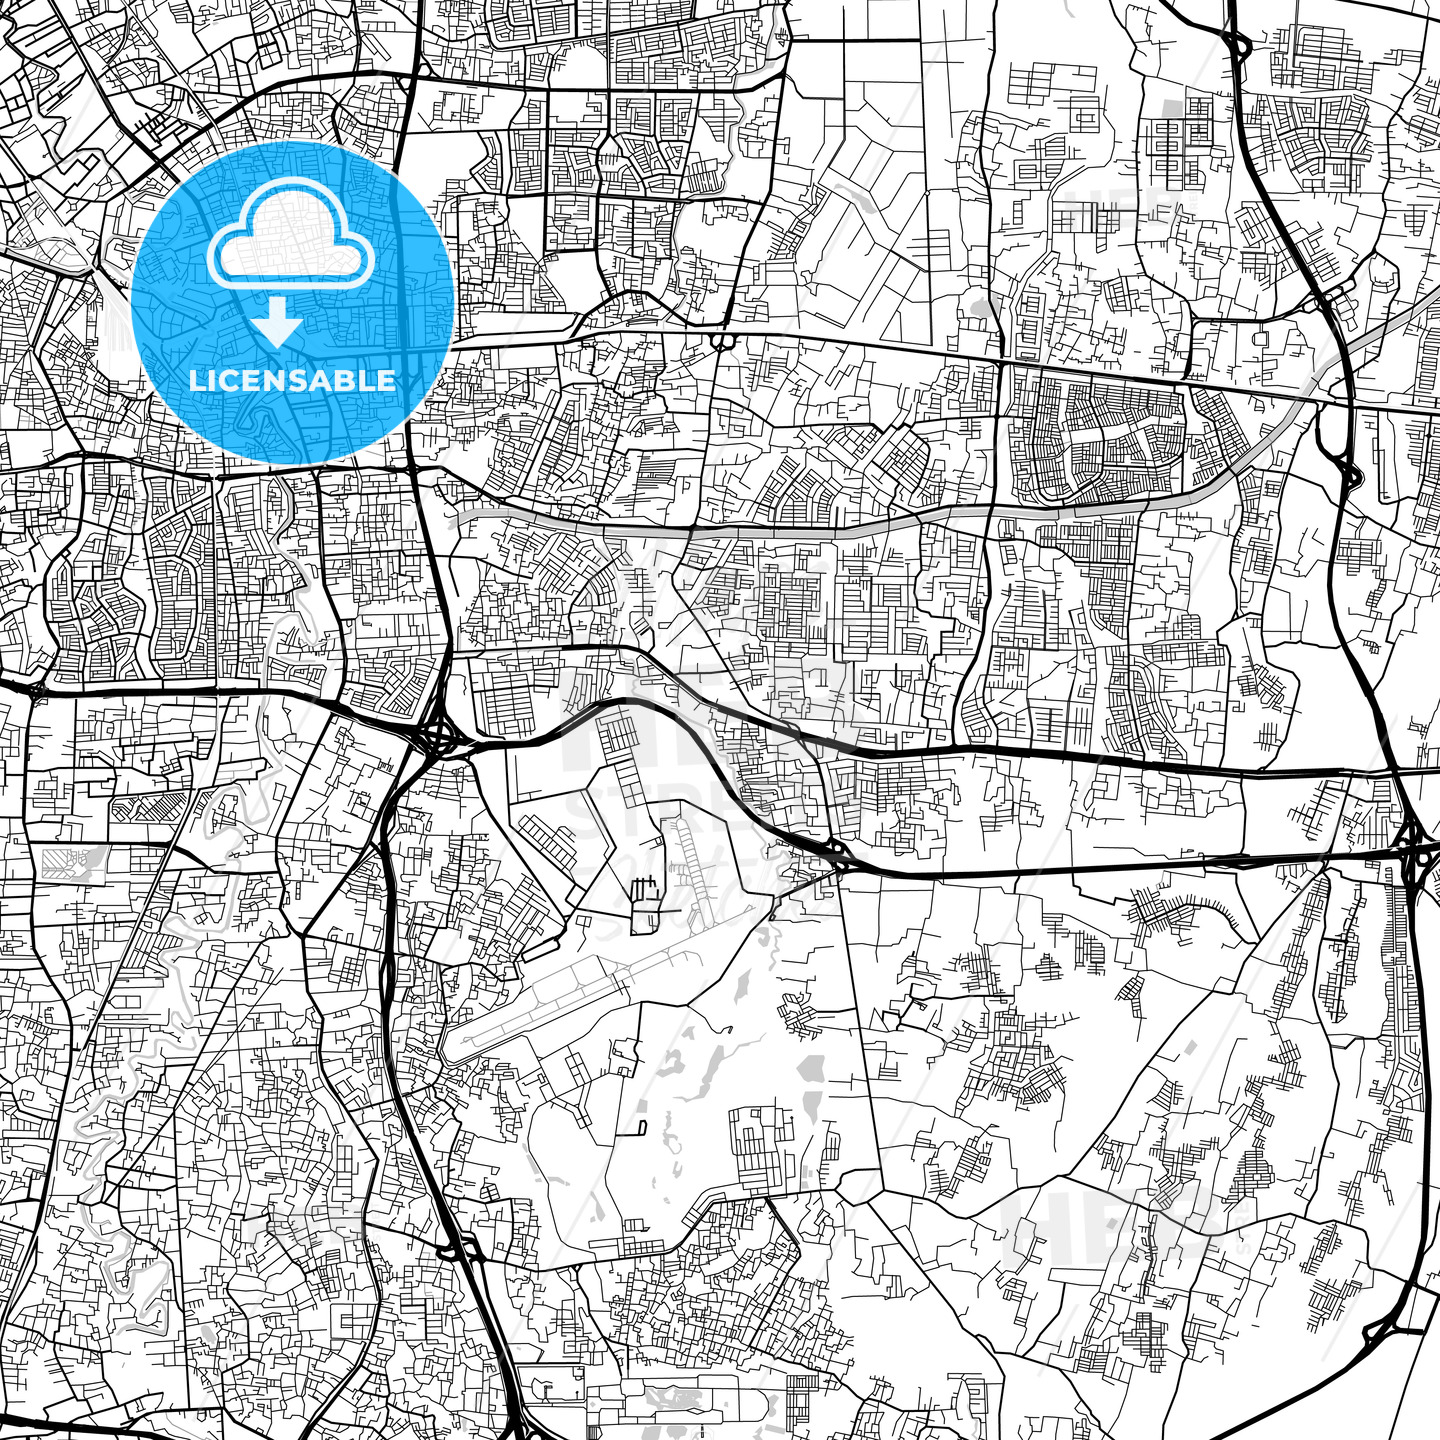 East Jakarta, Indonesia, Downtown City Map, Light - HEBSTREITS